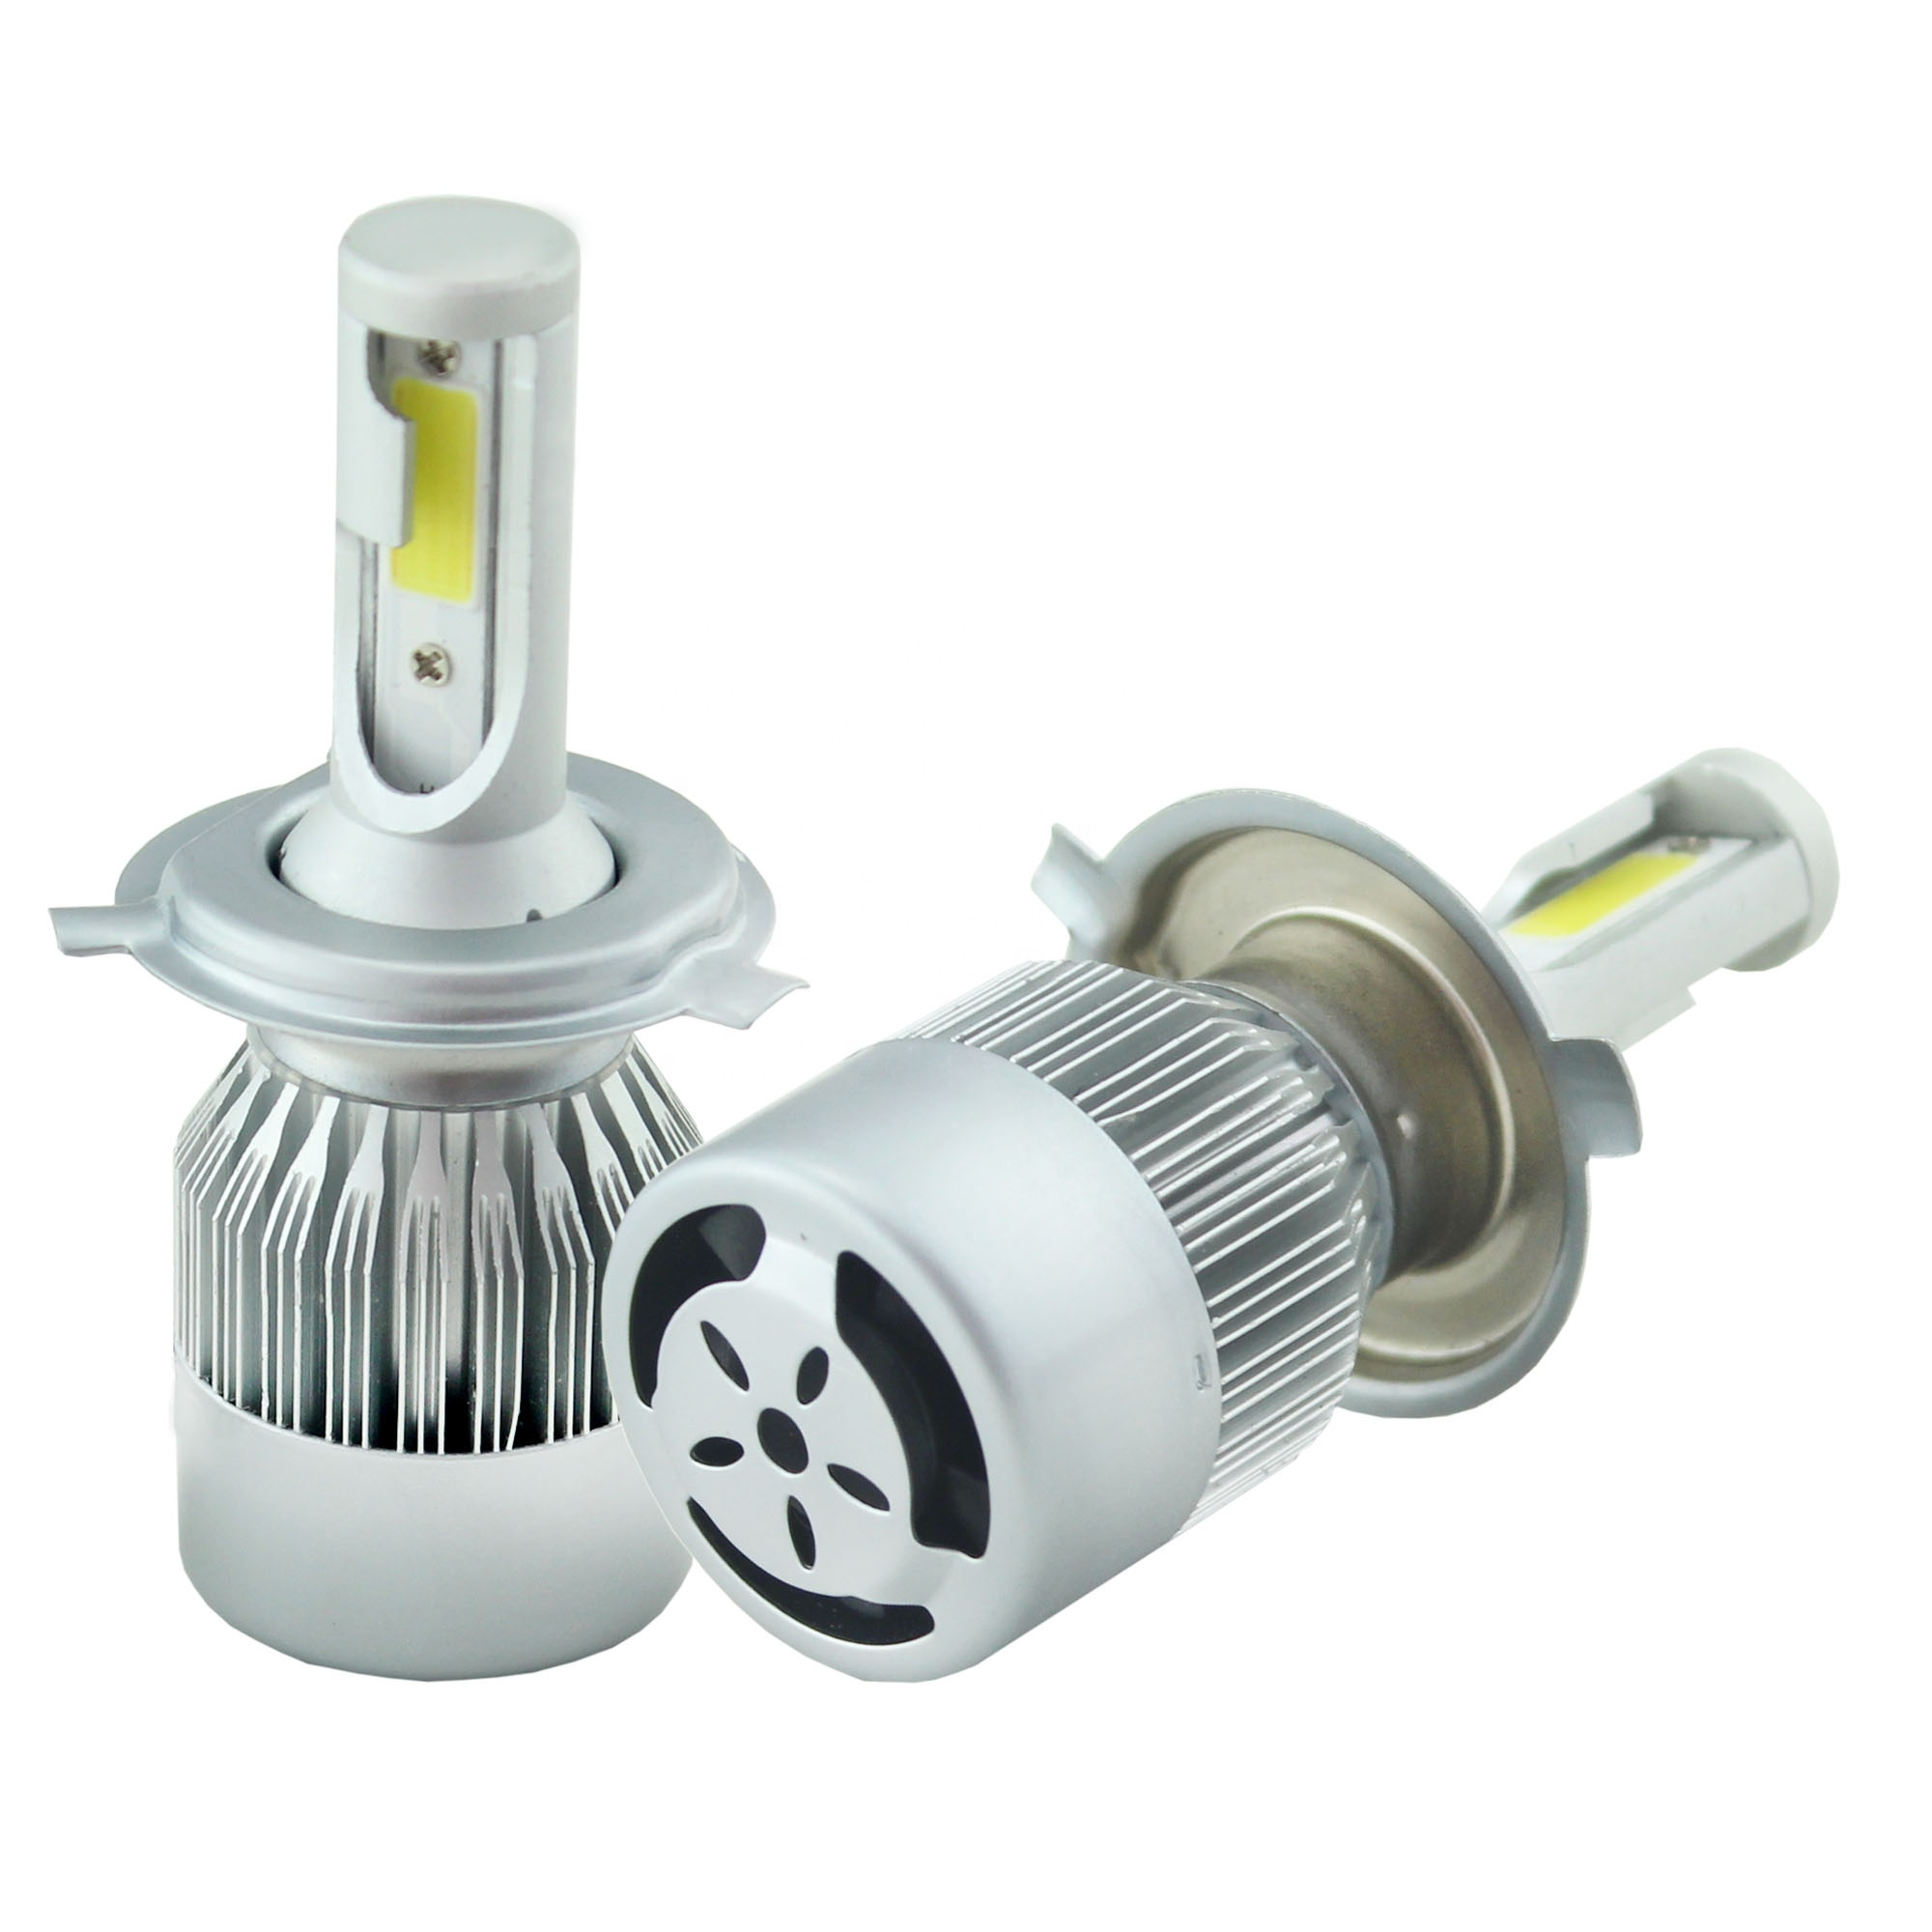 High power All in one kit led auto h4 12v 72w led light h4, 7600lm C6 led headlight <strong>bulbs</strong> h4, lamp led h4